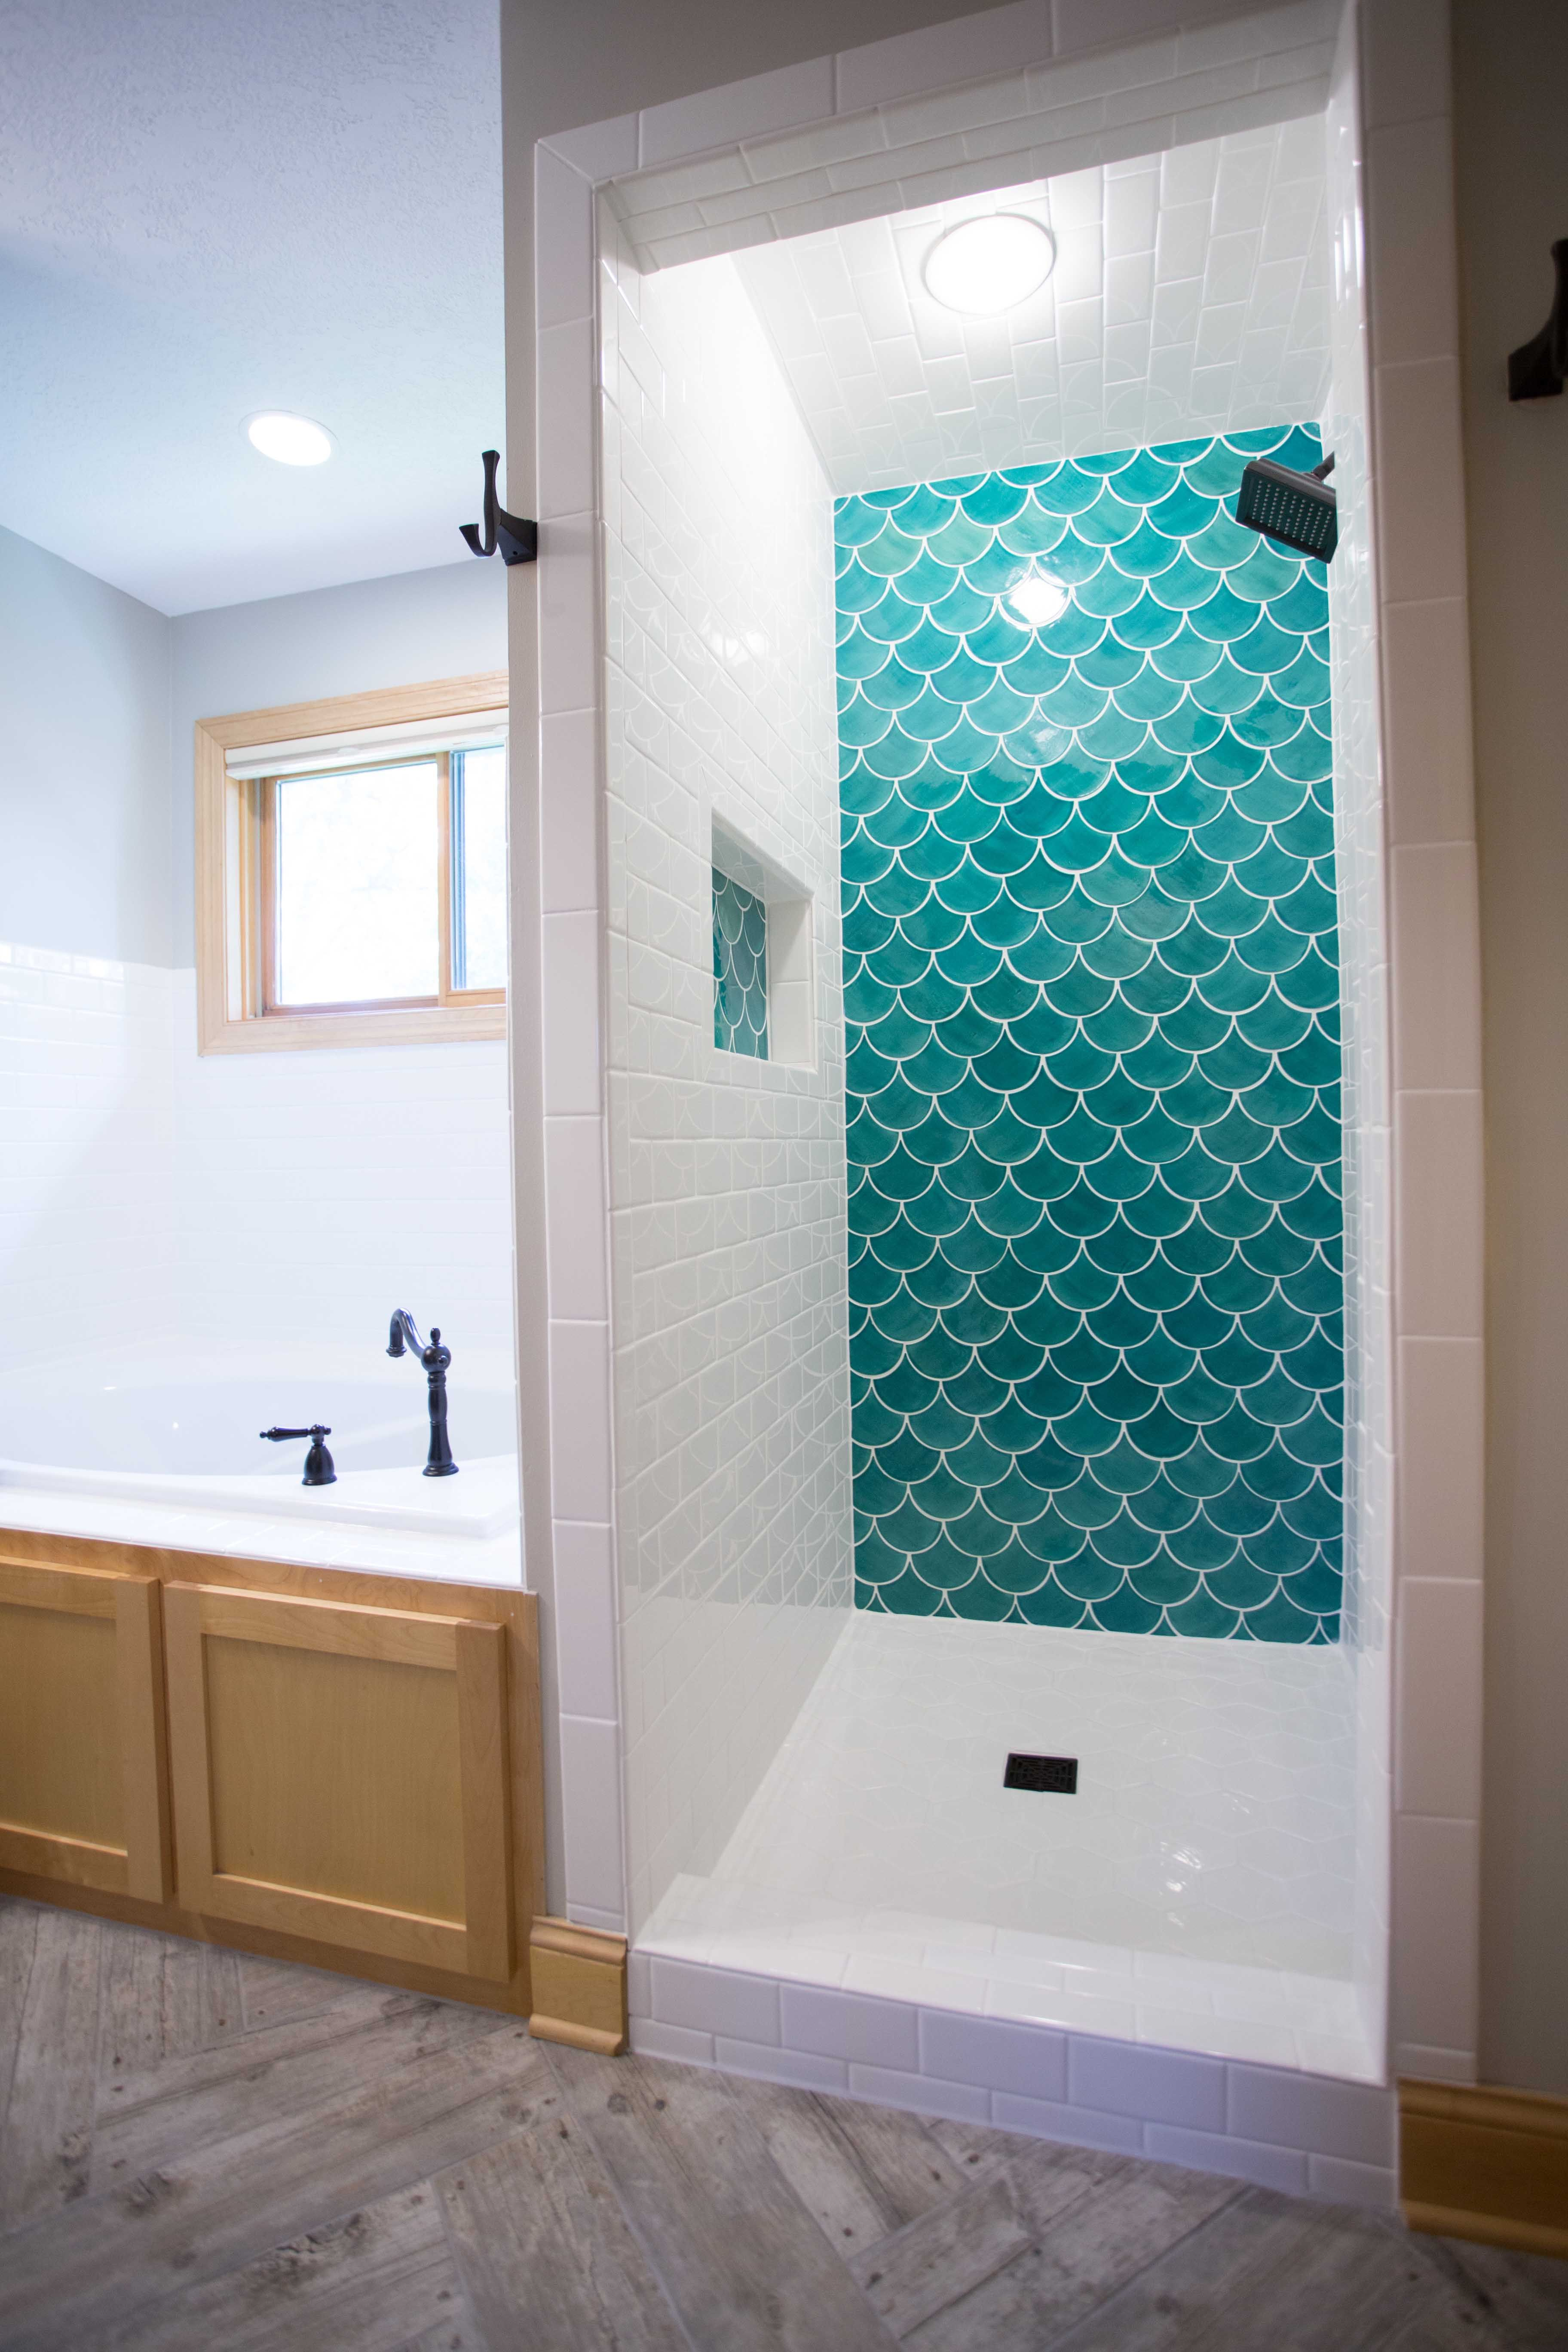 Subway Tiled Bathrooms Blue Moroccan Fish Scale Tile Complimented By White Subway Tile